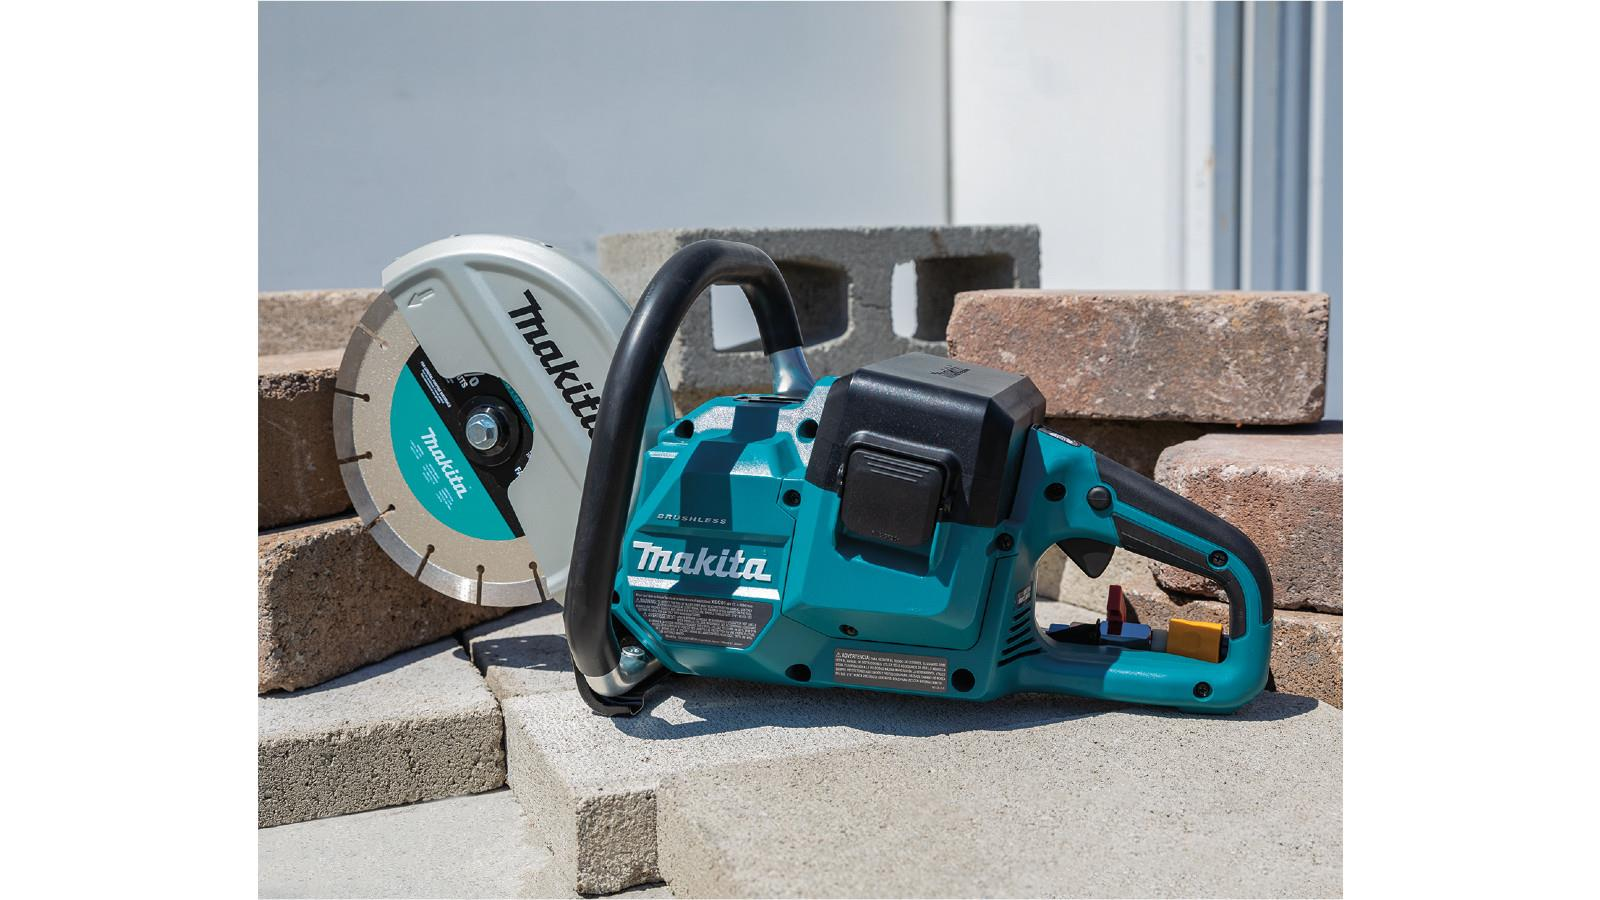 Makita Launches New Twin 18V Brushless Disc Cutter image